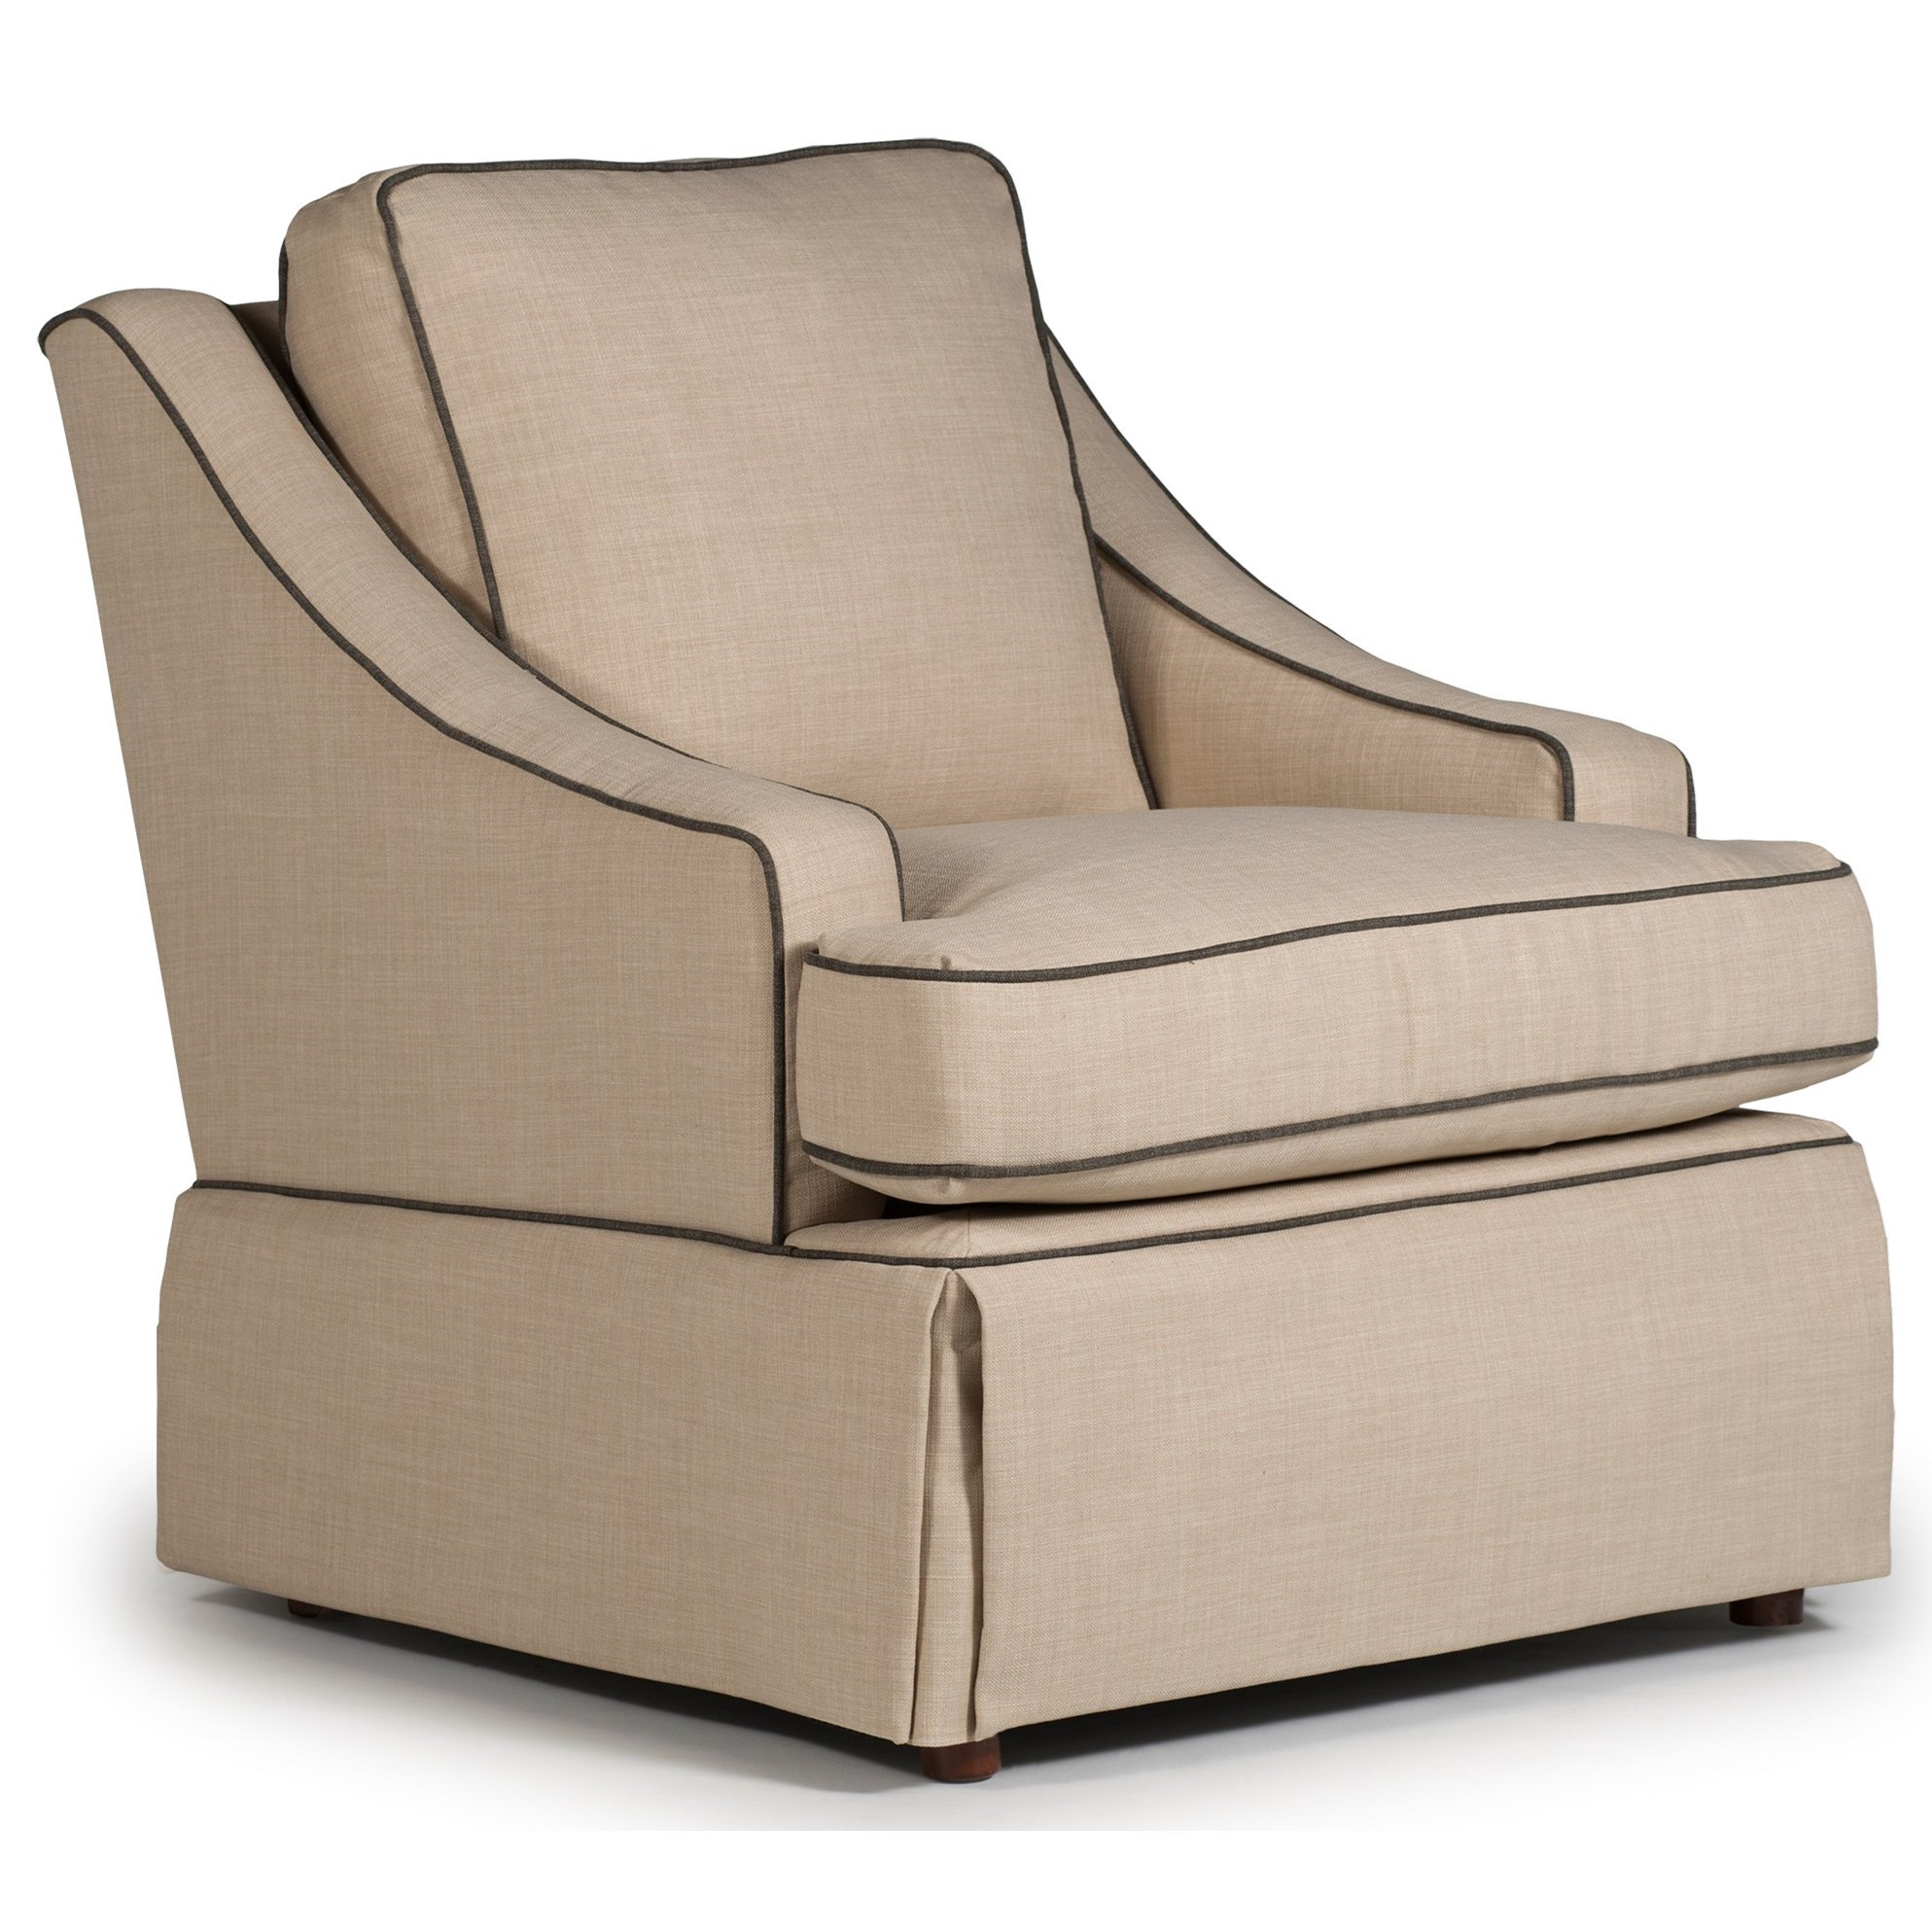 Swivel Glide Chairs Contemporary Ayla Swivel Glider Chair By Best Home Furnishings At Dean Bosler S